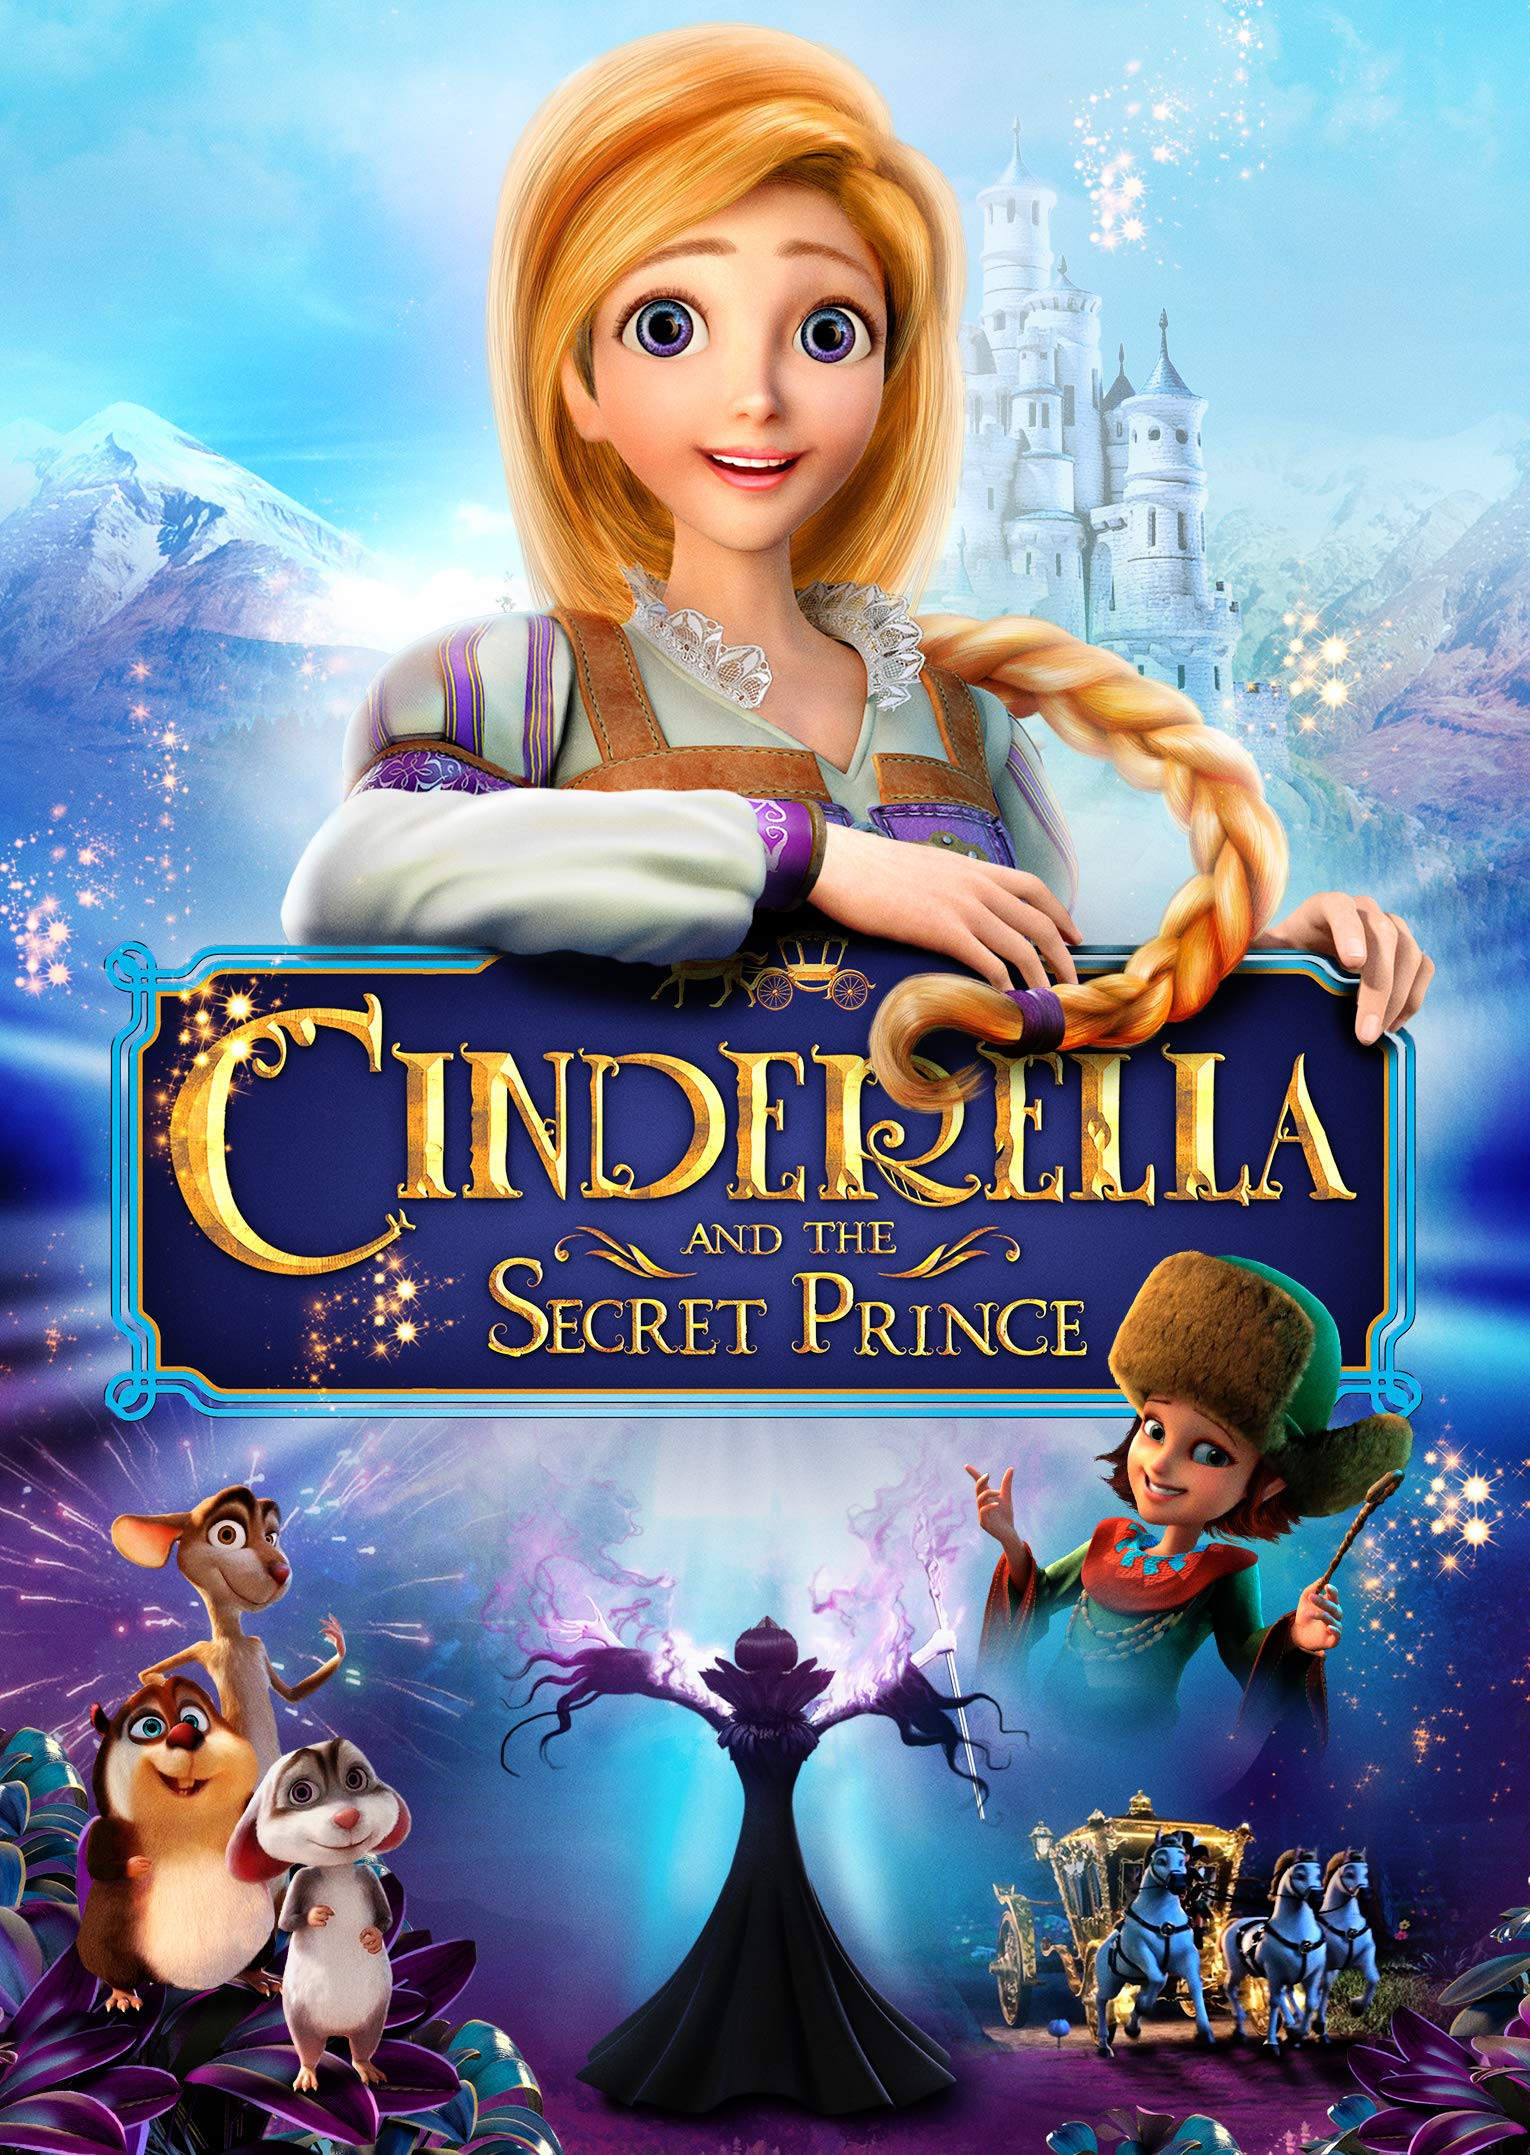 Book Cover: Cinderella and the Secret Prince